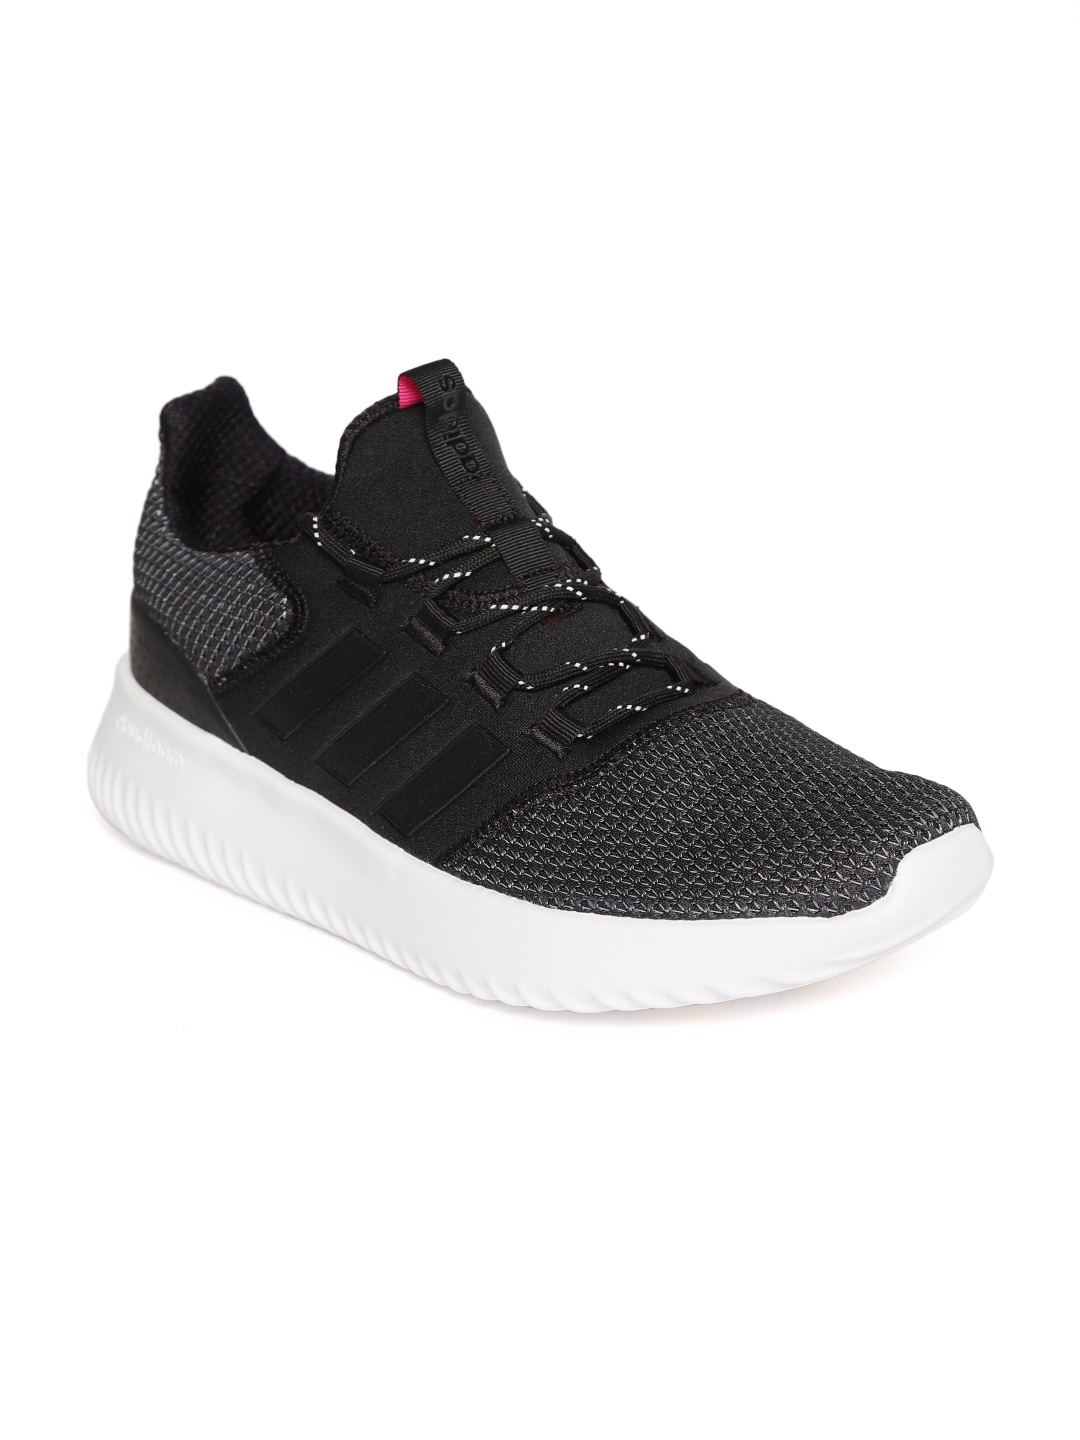 ceca3744eca Adidas Shoes - Buy Adidas Shoes for Men   Women Online - Myntra